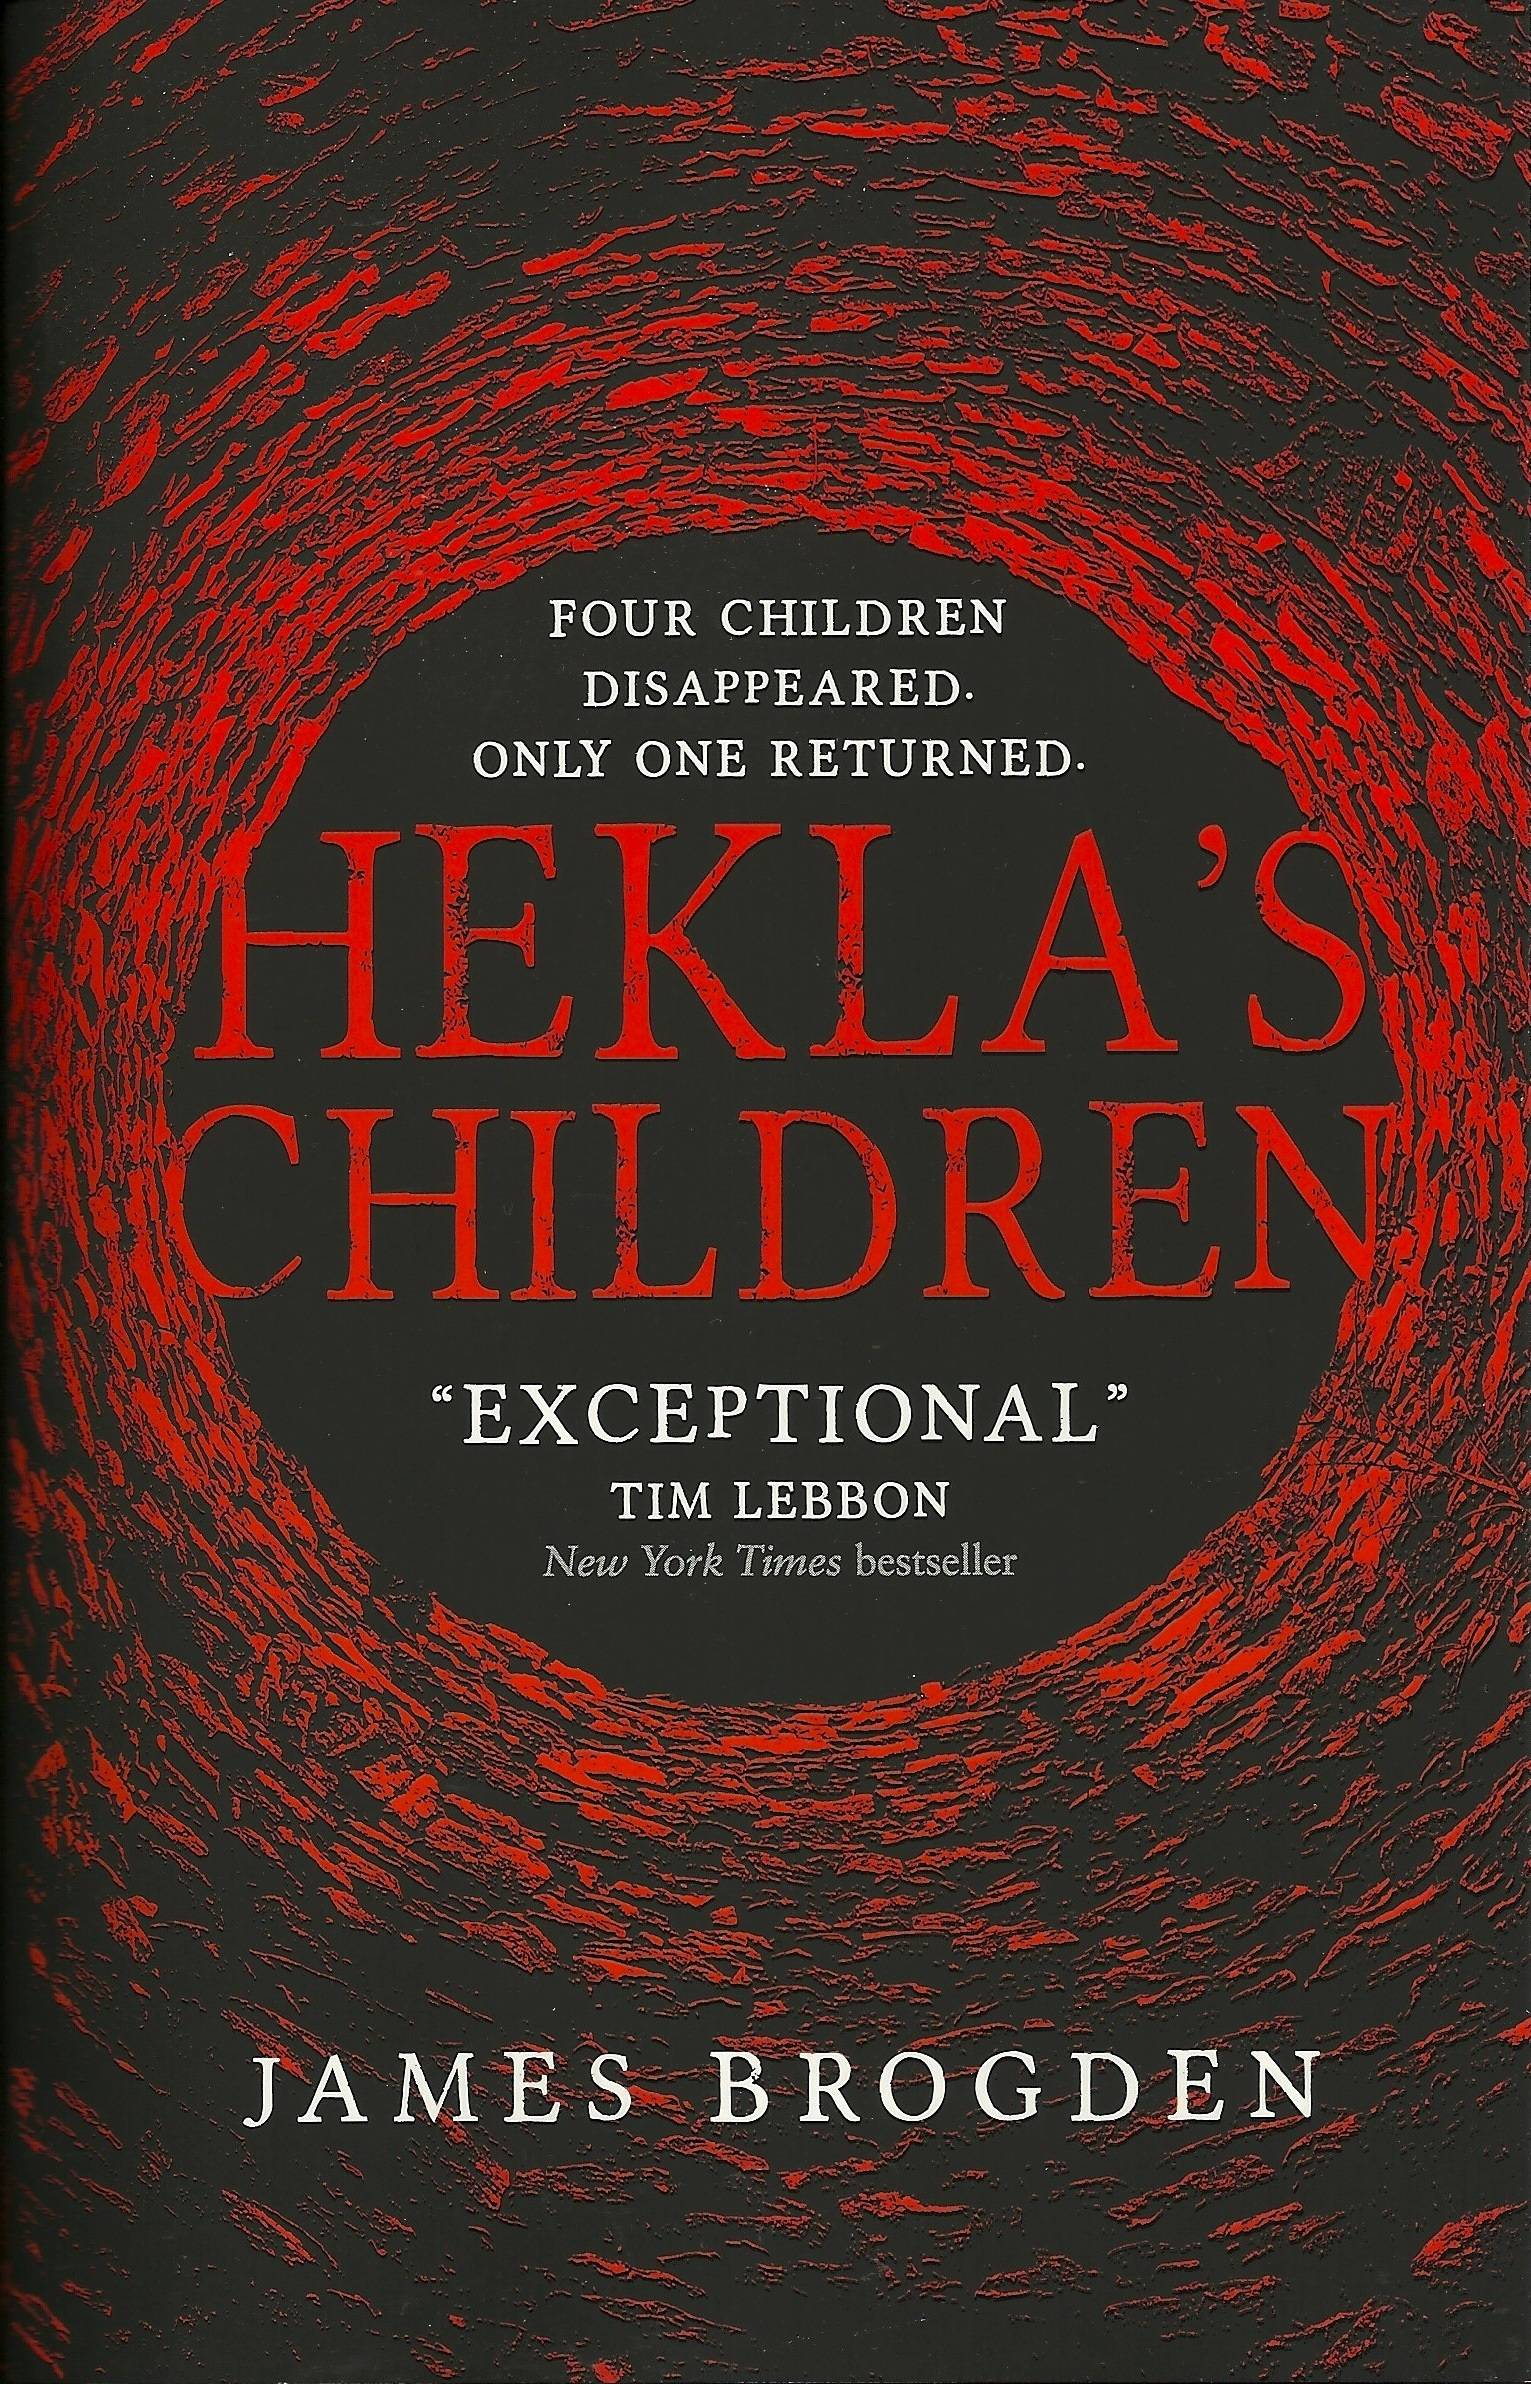 """""""Four children disappeared, only one returned"""".  That's the short synopsis of Titan Book's Hekla's Children.  Perhaps they didn't have the space to elaborate, as this novel is much more than a simple missing persons story.  It could be shelved under horror, historical fiction, or fantasy reliably, as Hekla's Children defies a simple classification.  It's the story of a monster from another world intruding on ours and the lengths to which people will go, out of regret and finding closure."""